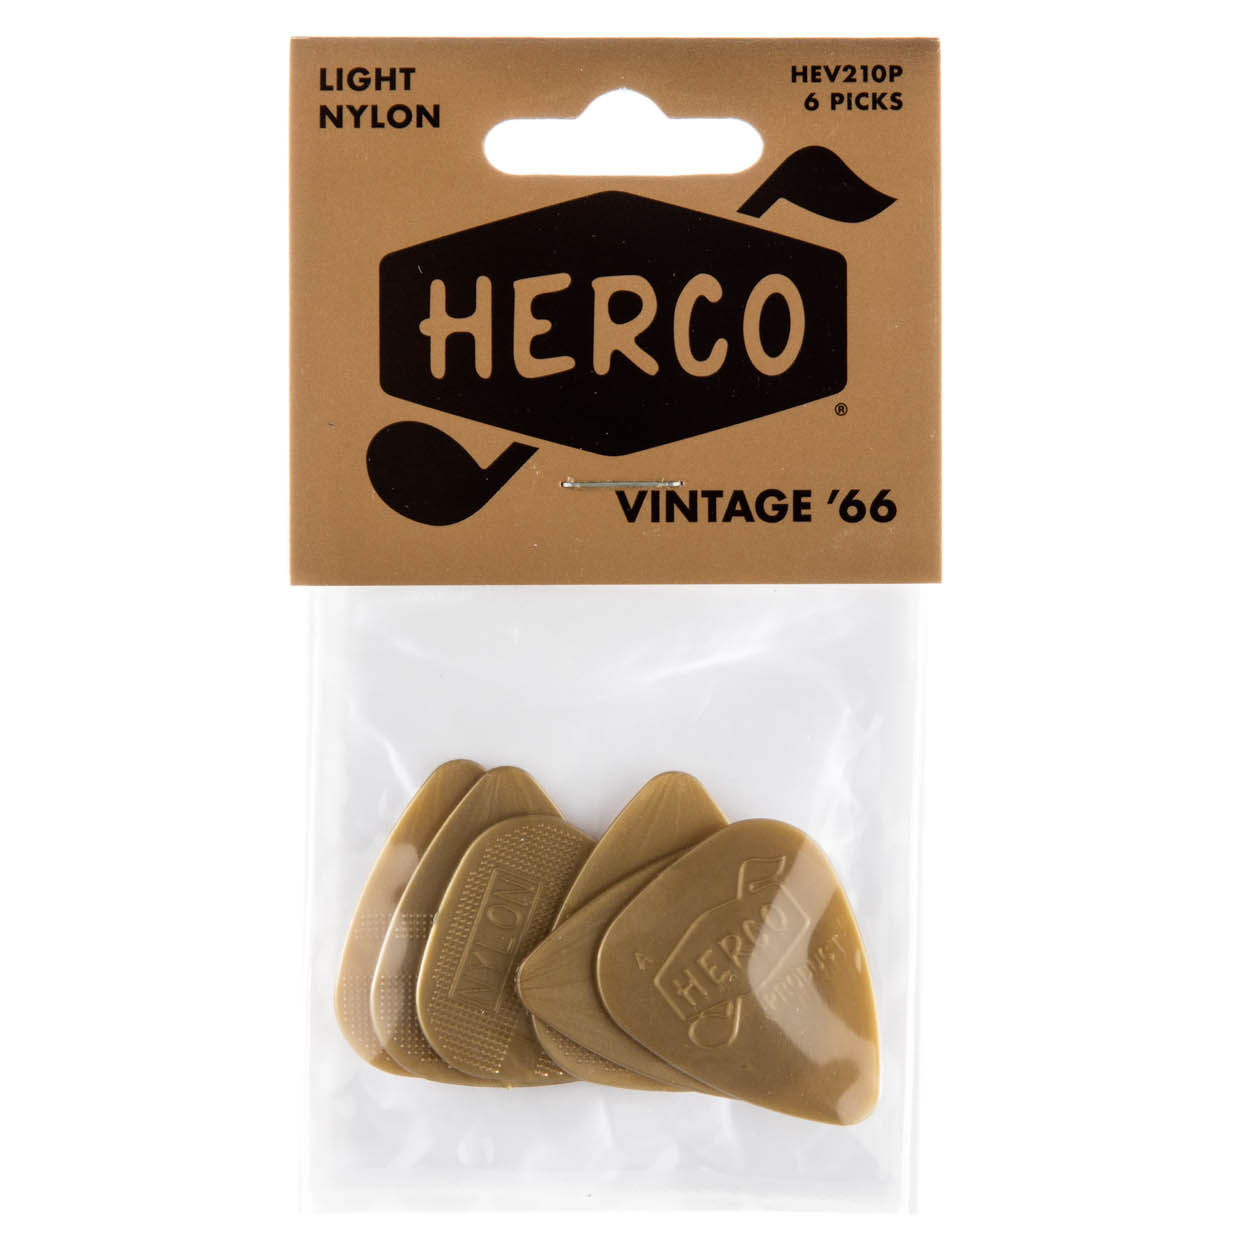 Herco Vintage 66 Guitar Pick Light 6 Pack Way Toggle Switch Dimarzio Ep1101 3